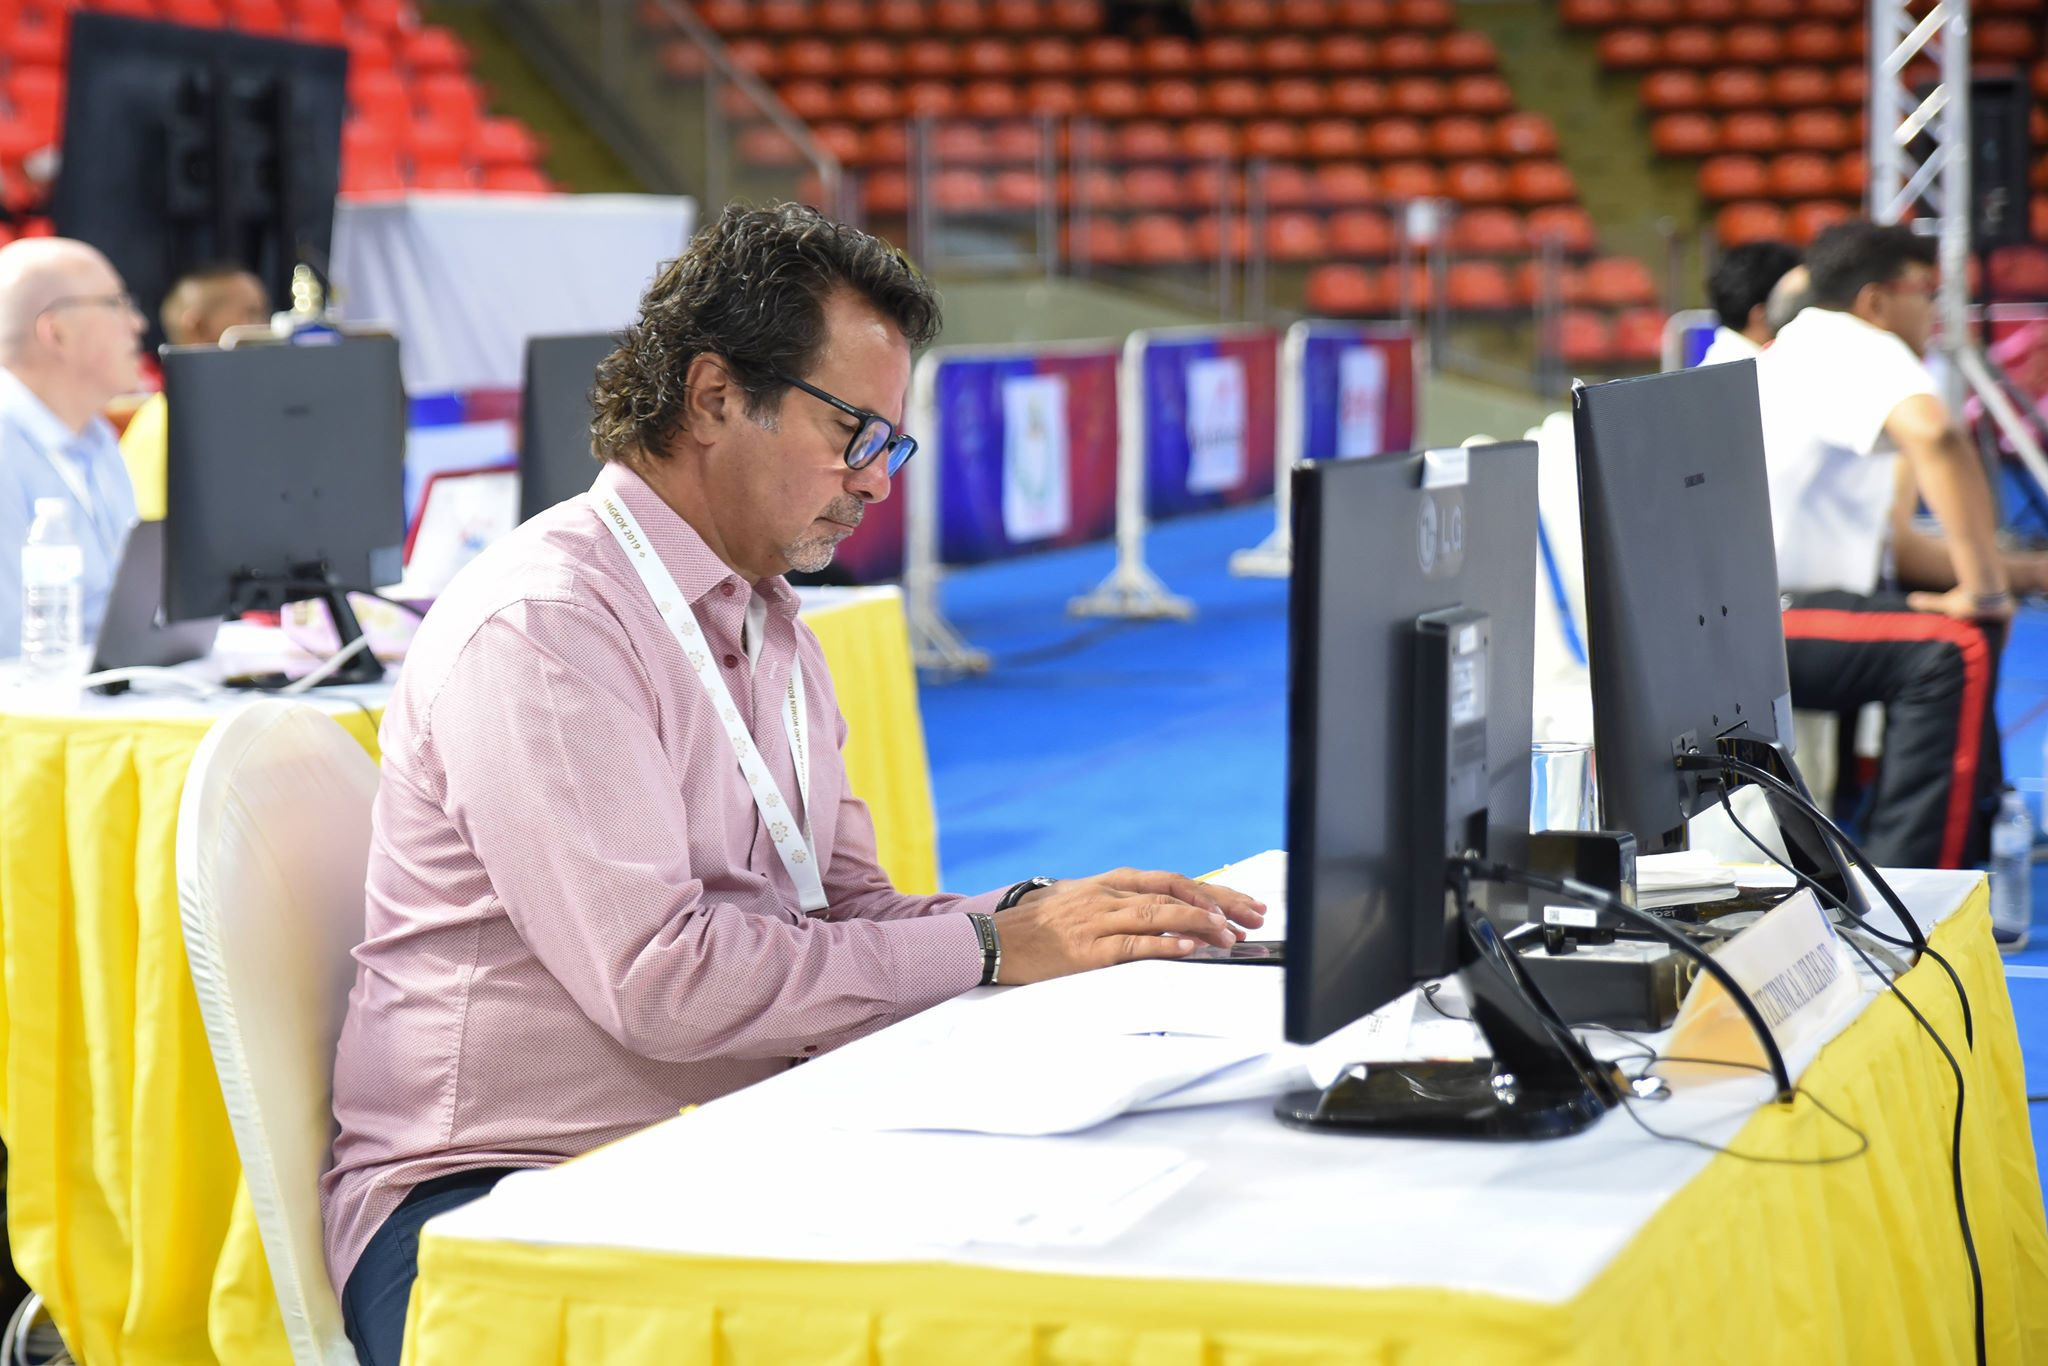 Pat Fiacco said he disagreed with the direction of the AIBA Executive Committee ©AIBA